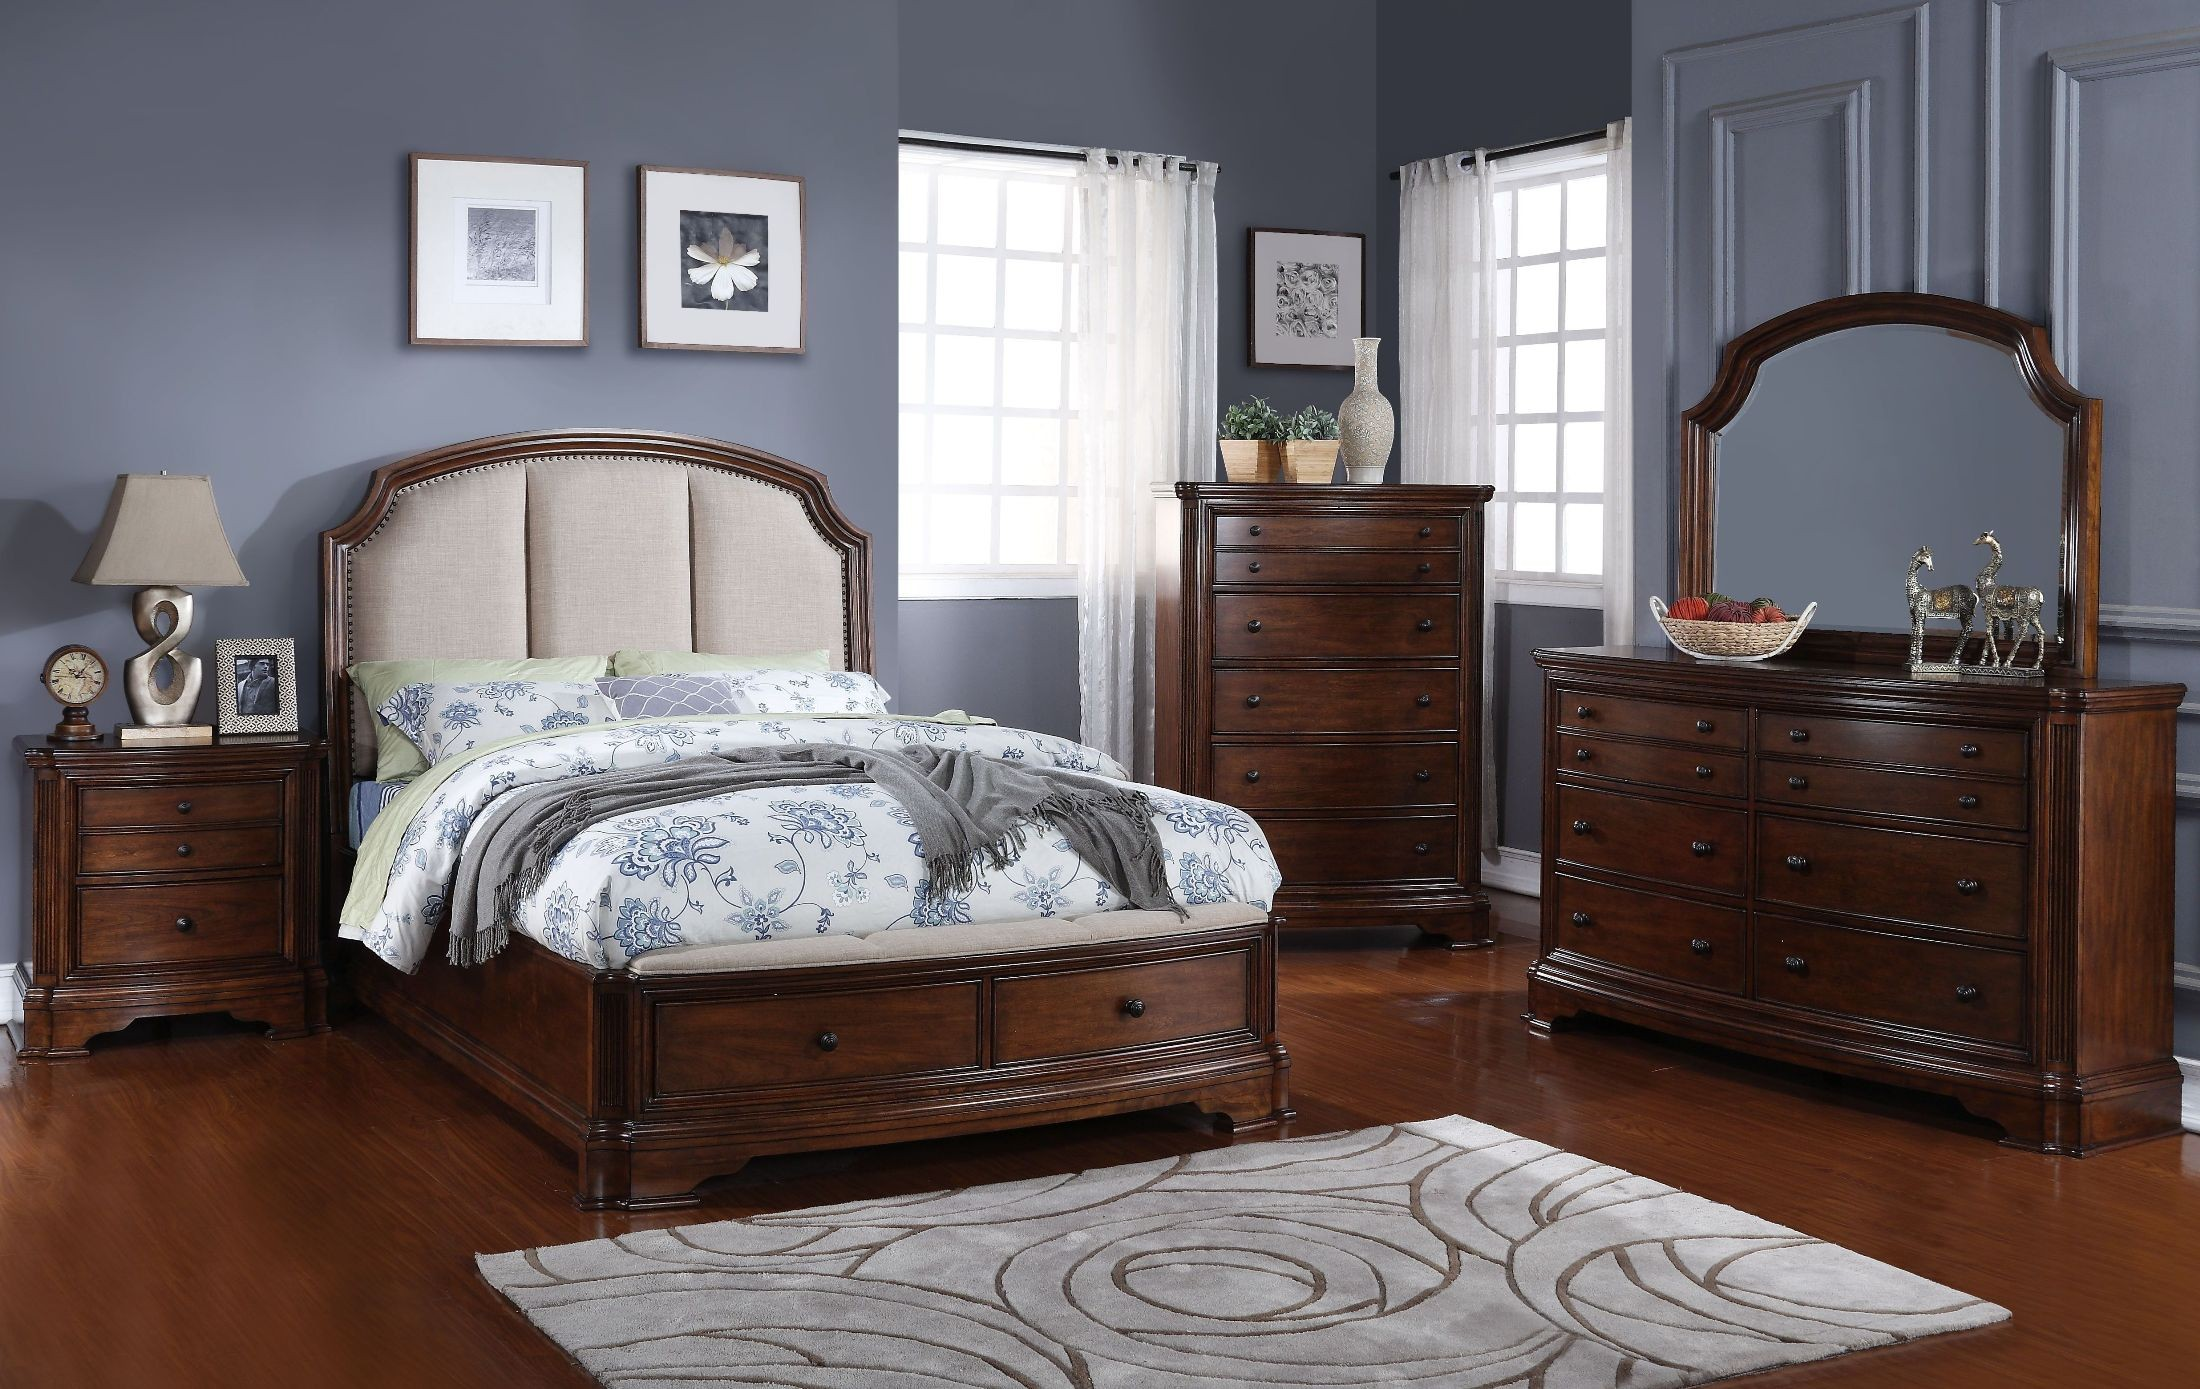 Chateaux Paix Cherry Upholstered Storage Bedroom Set